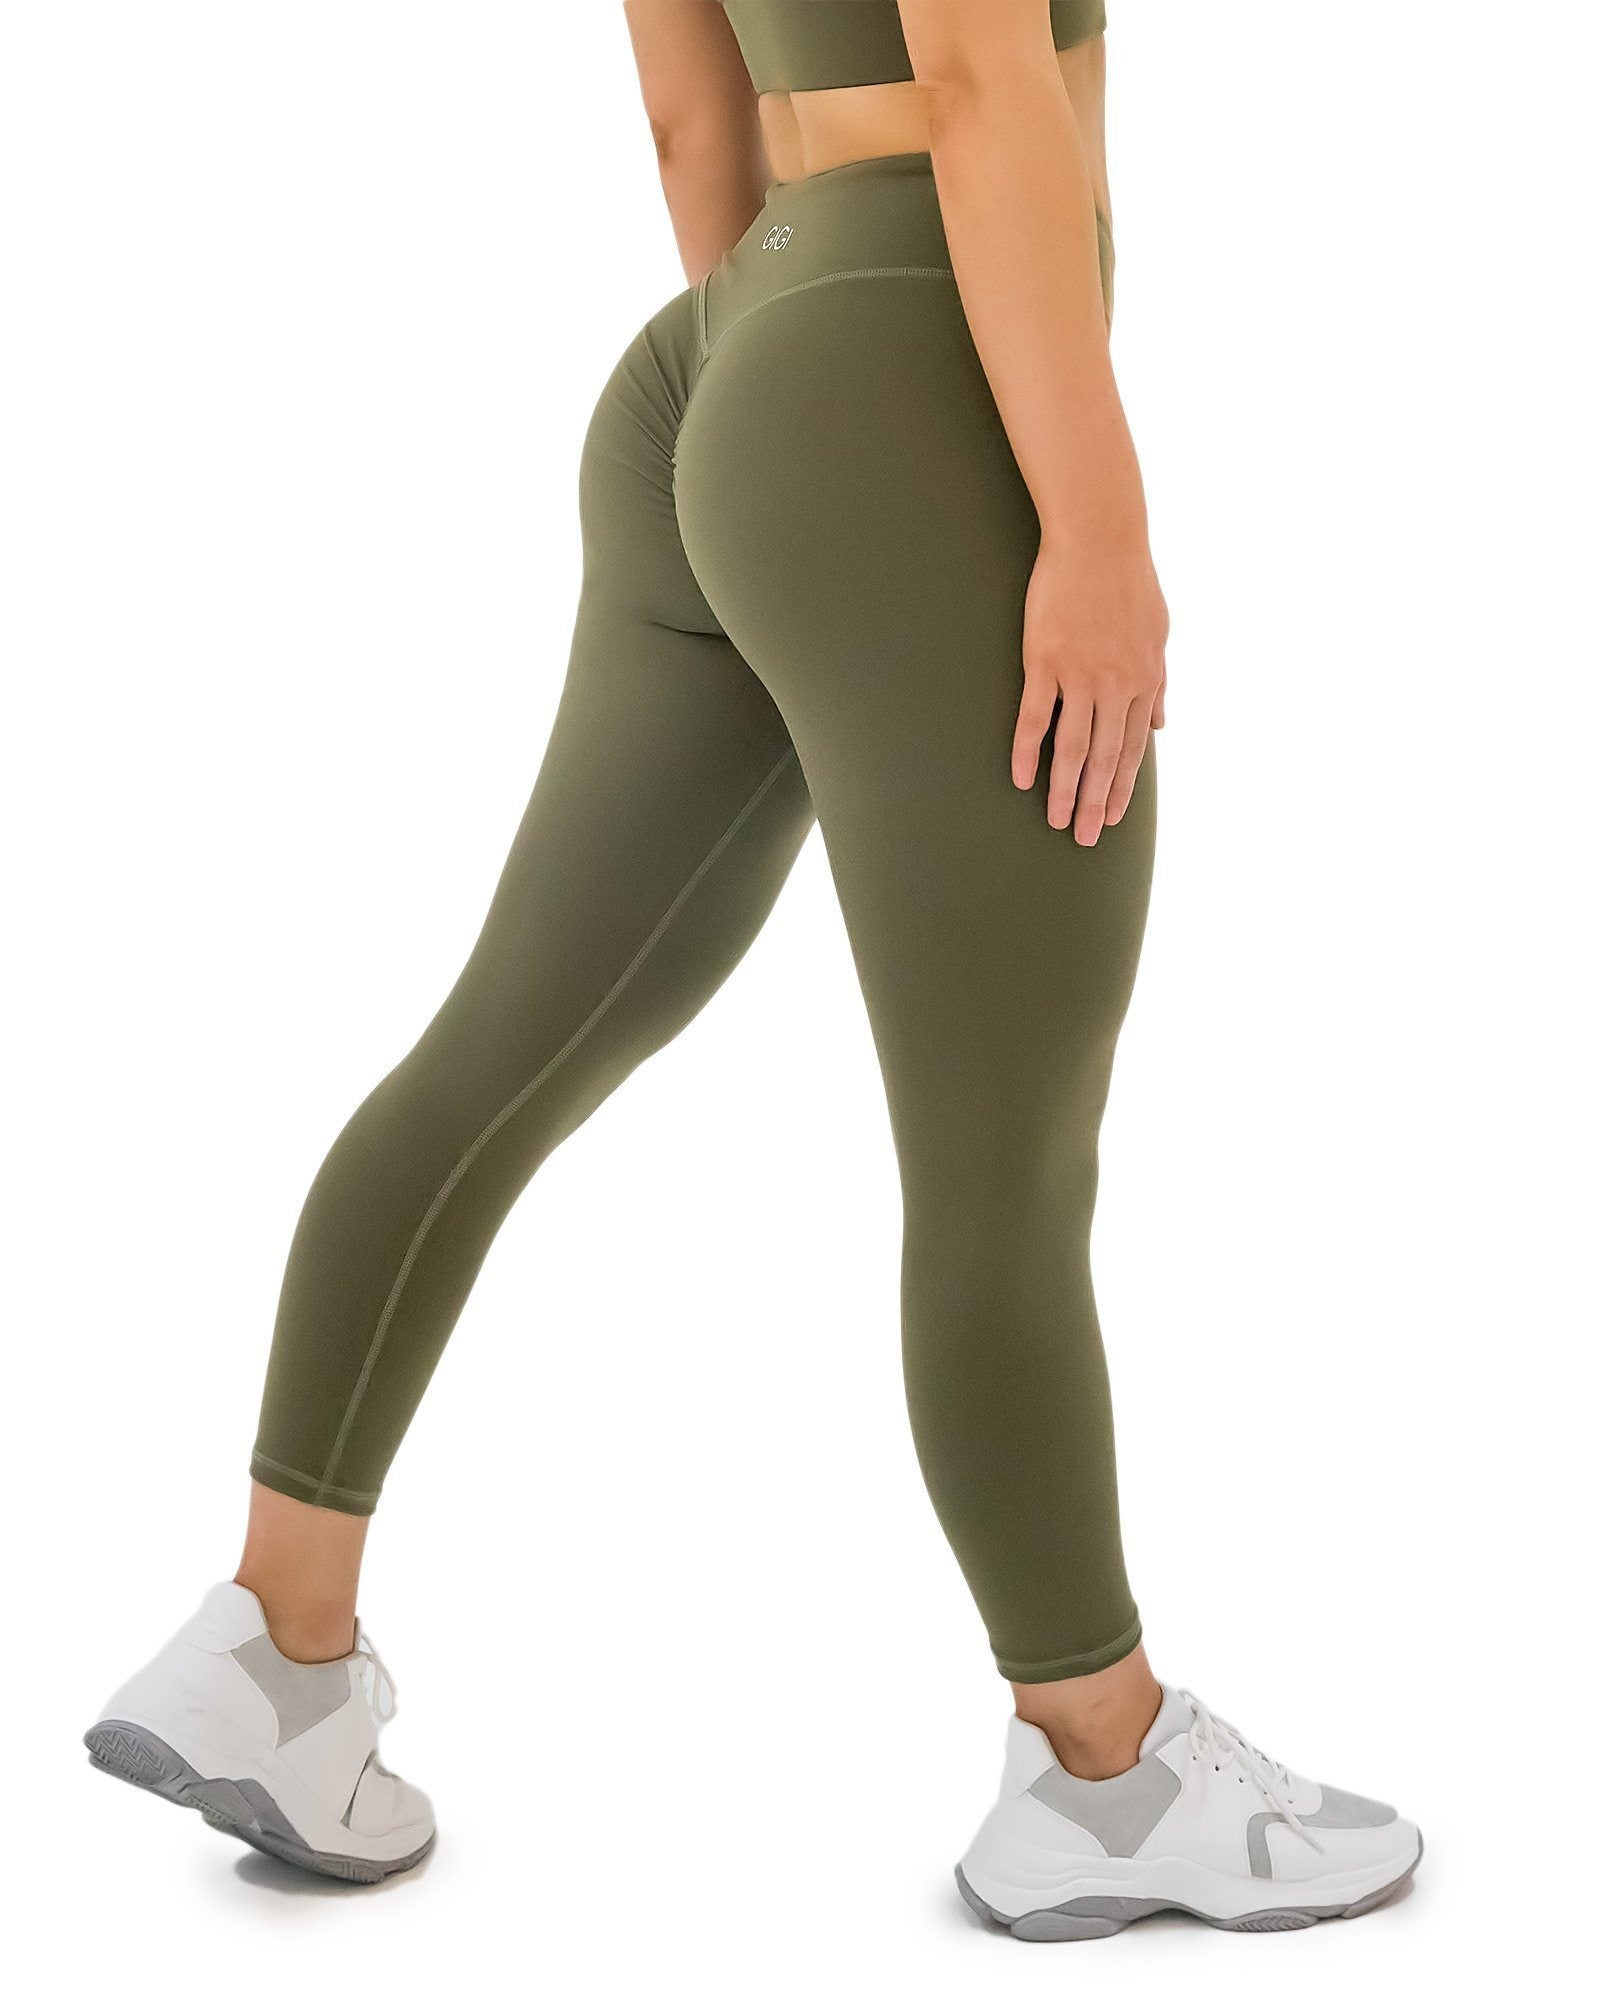 GIGI Line 7/8 Leggings - Khaki